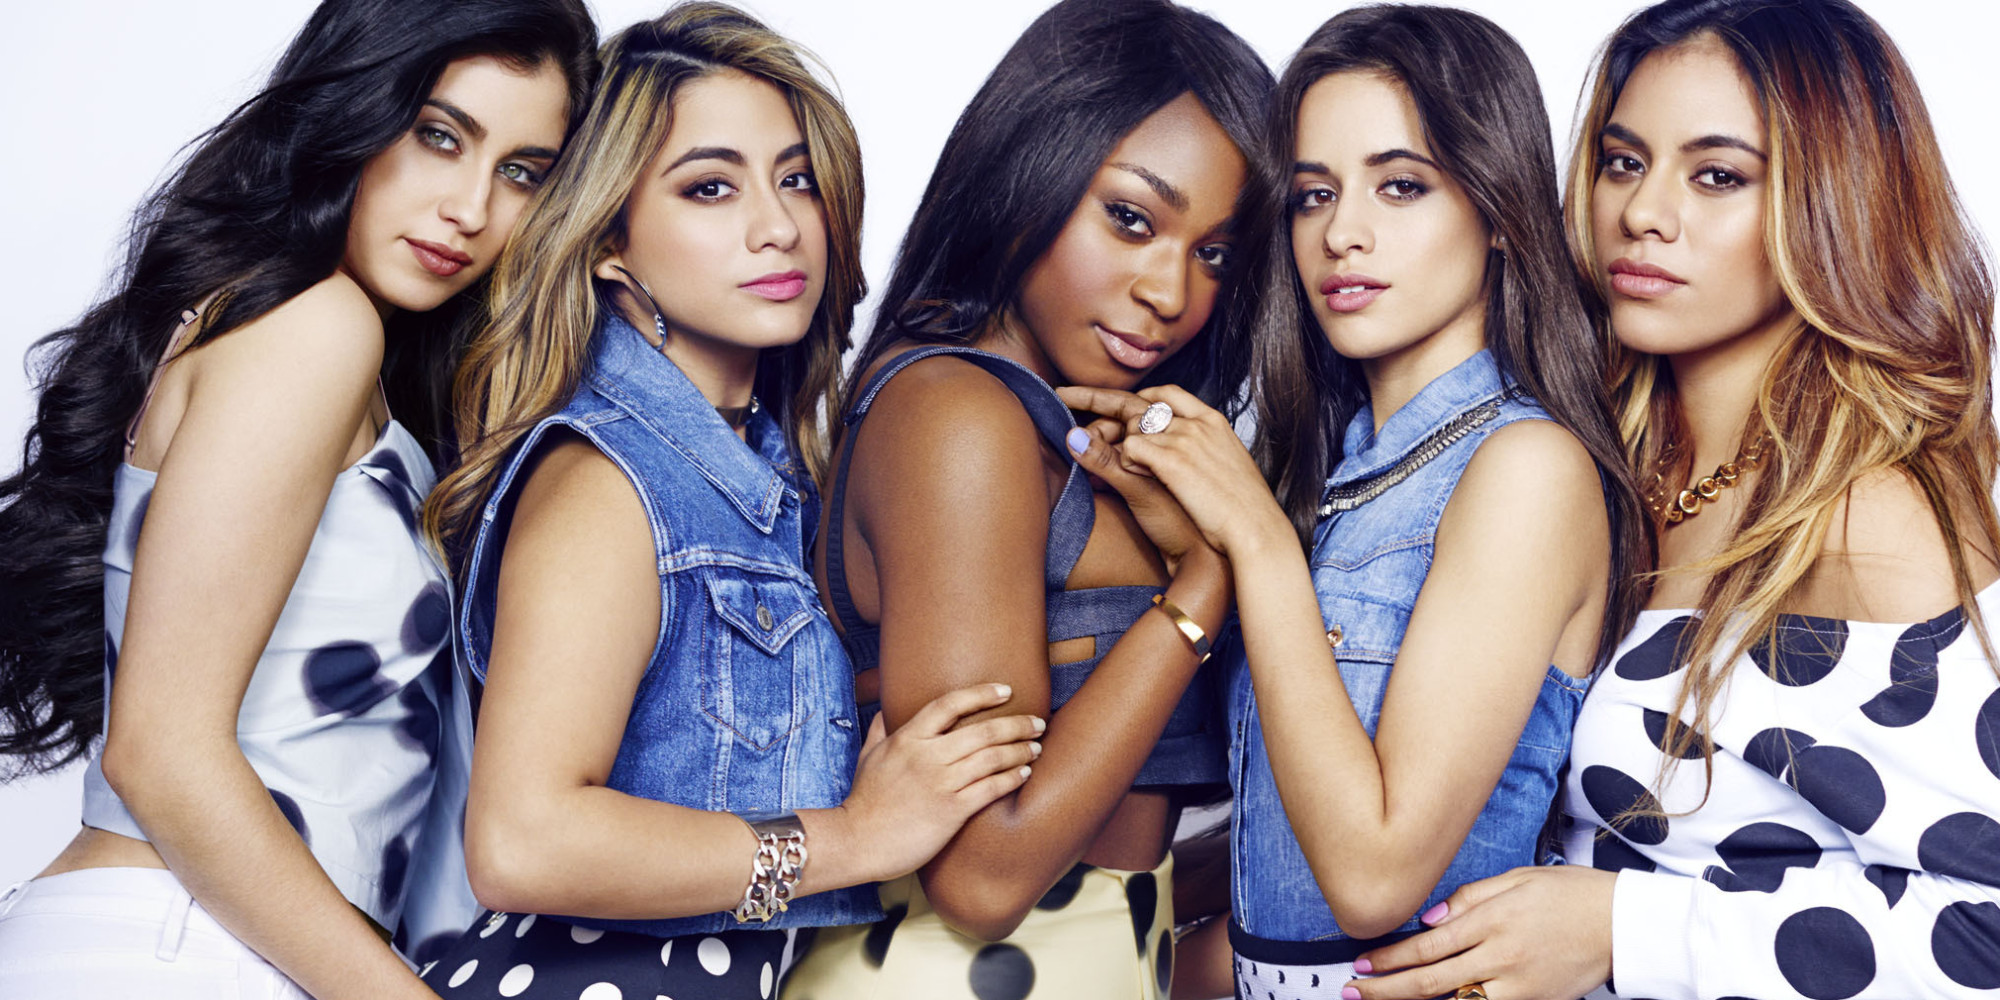 ... And Love Yourself, According To Fifth Harmony | The Huffington Post